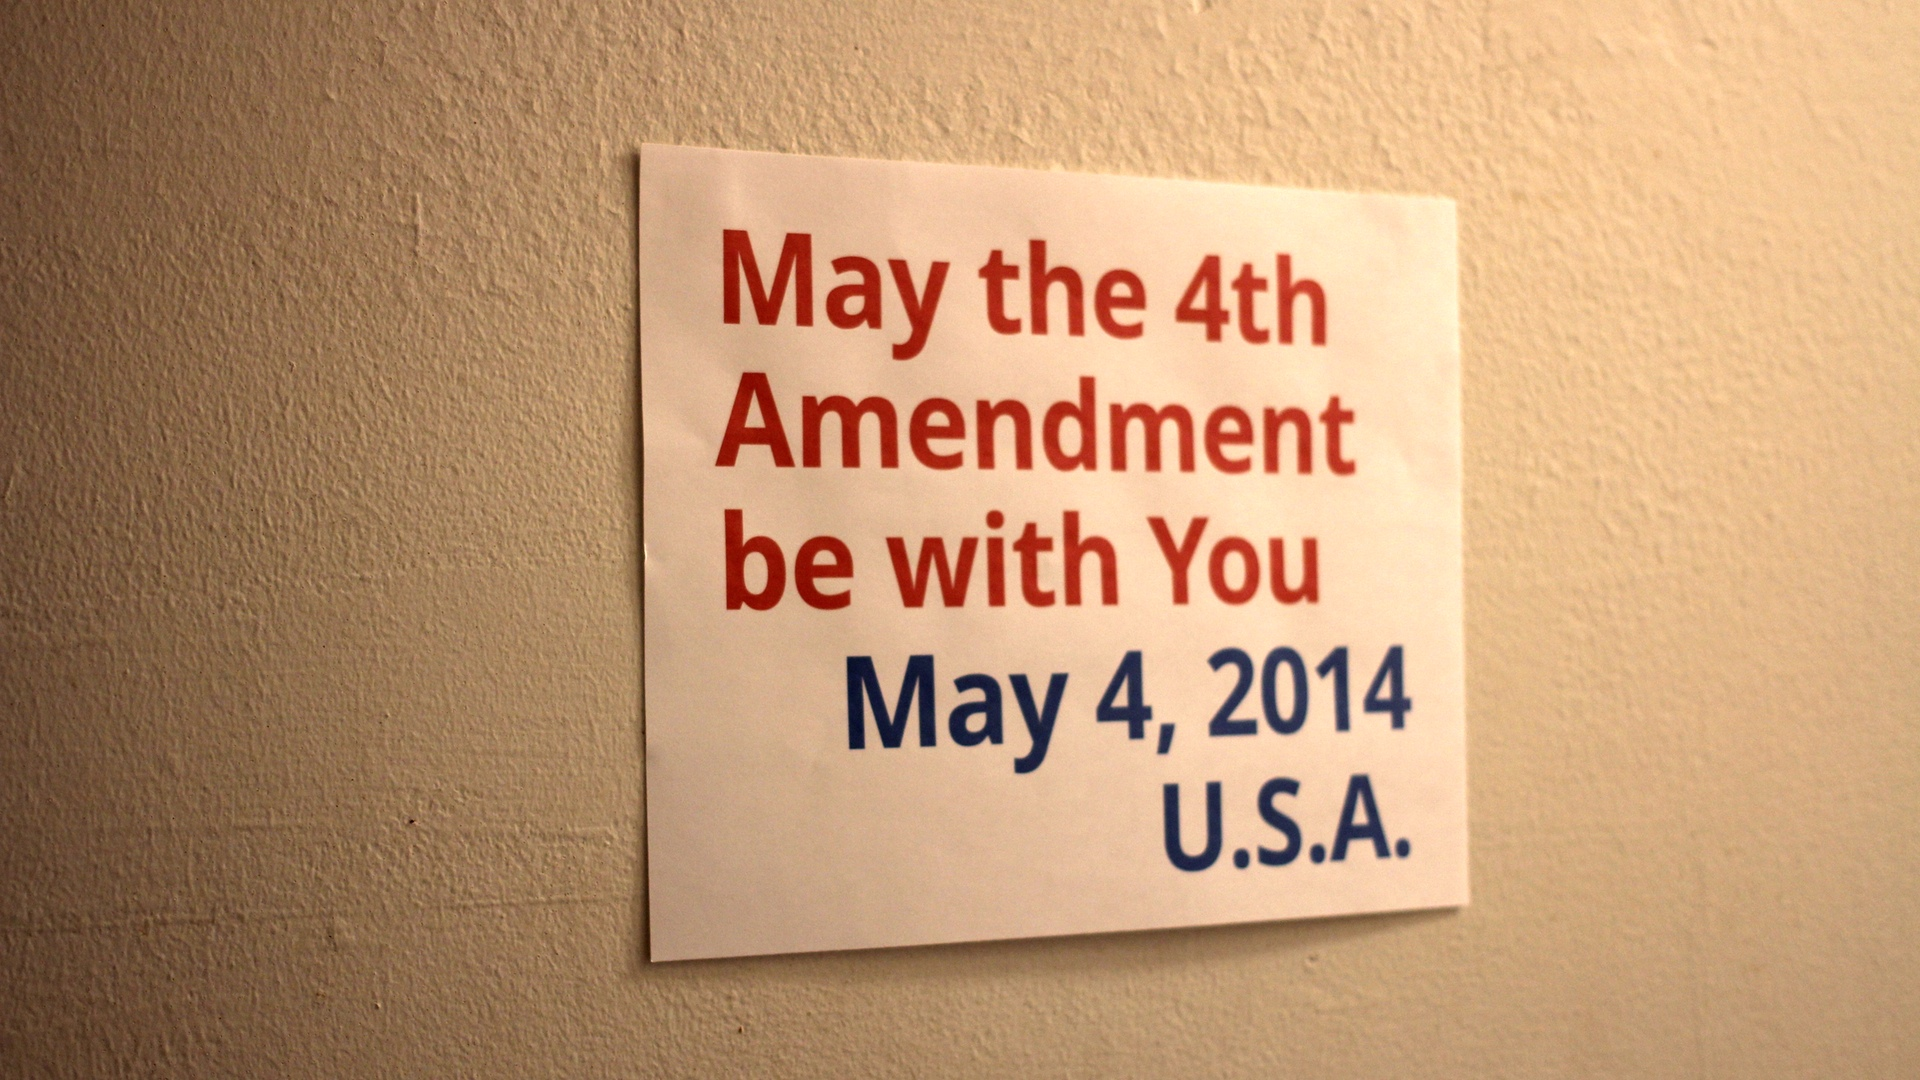 May the 4th Amendment be with You